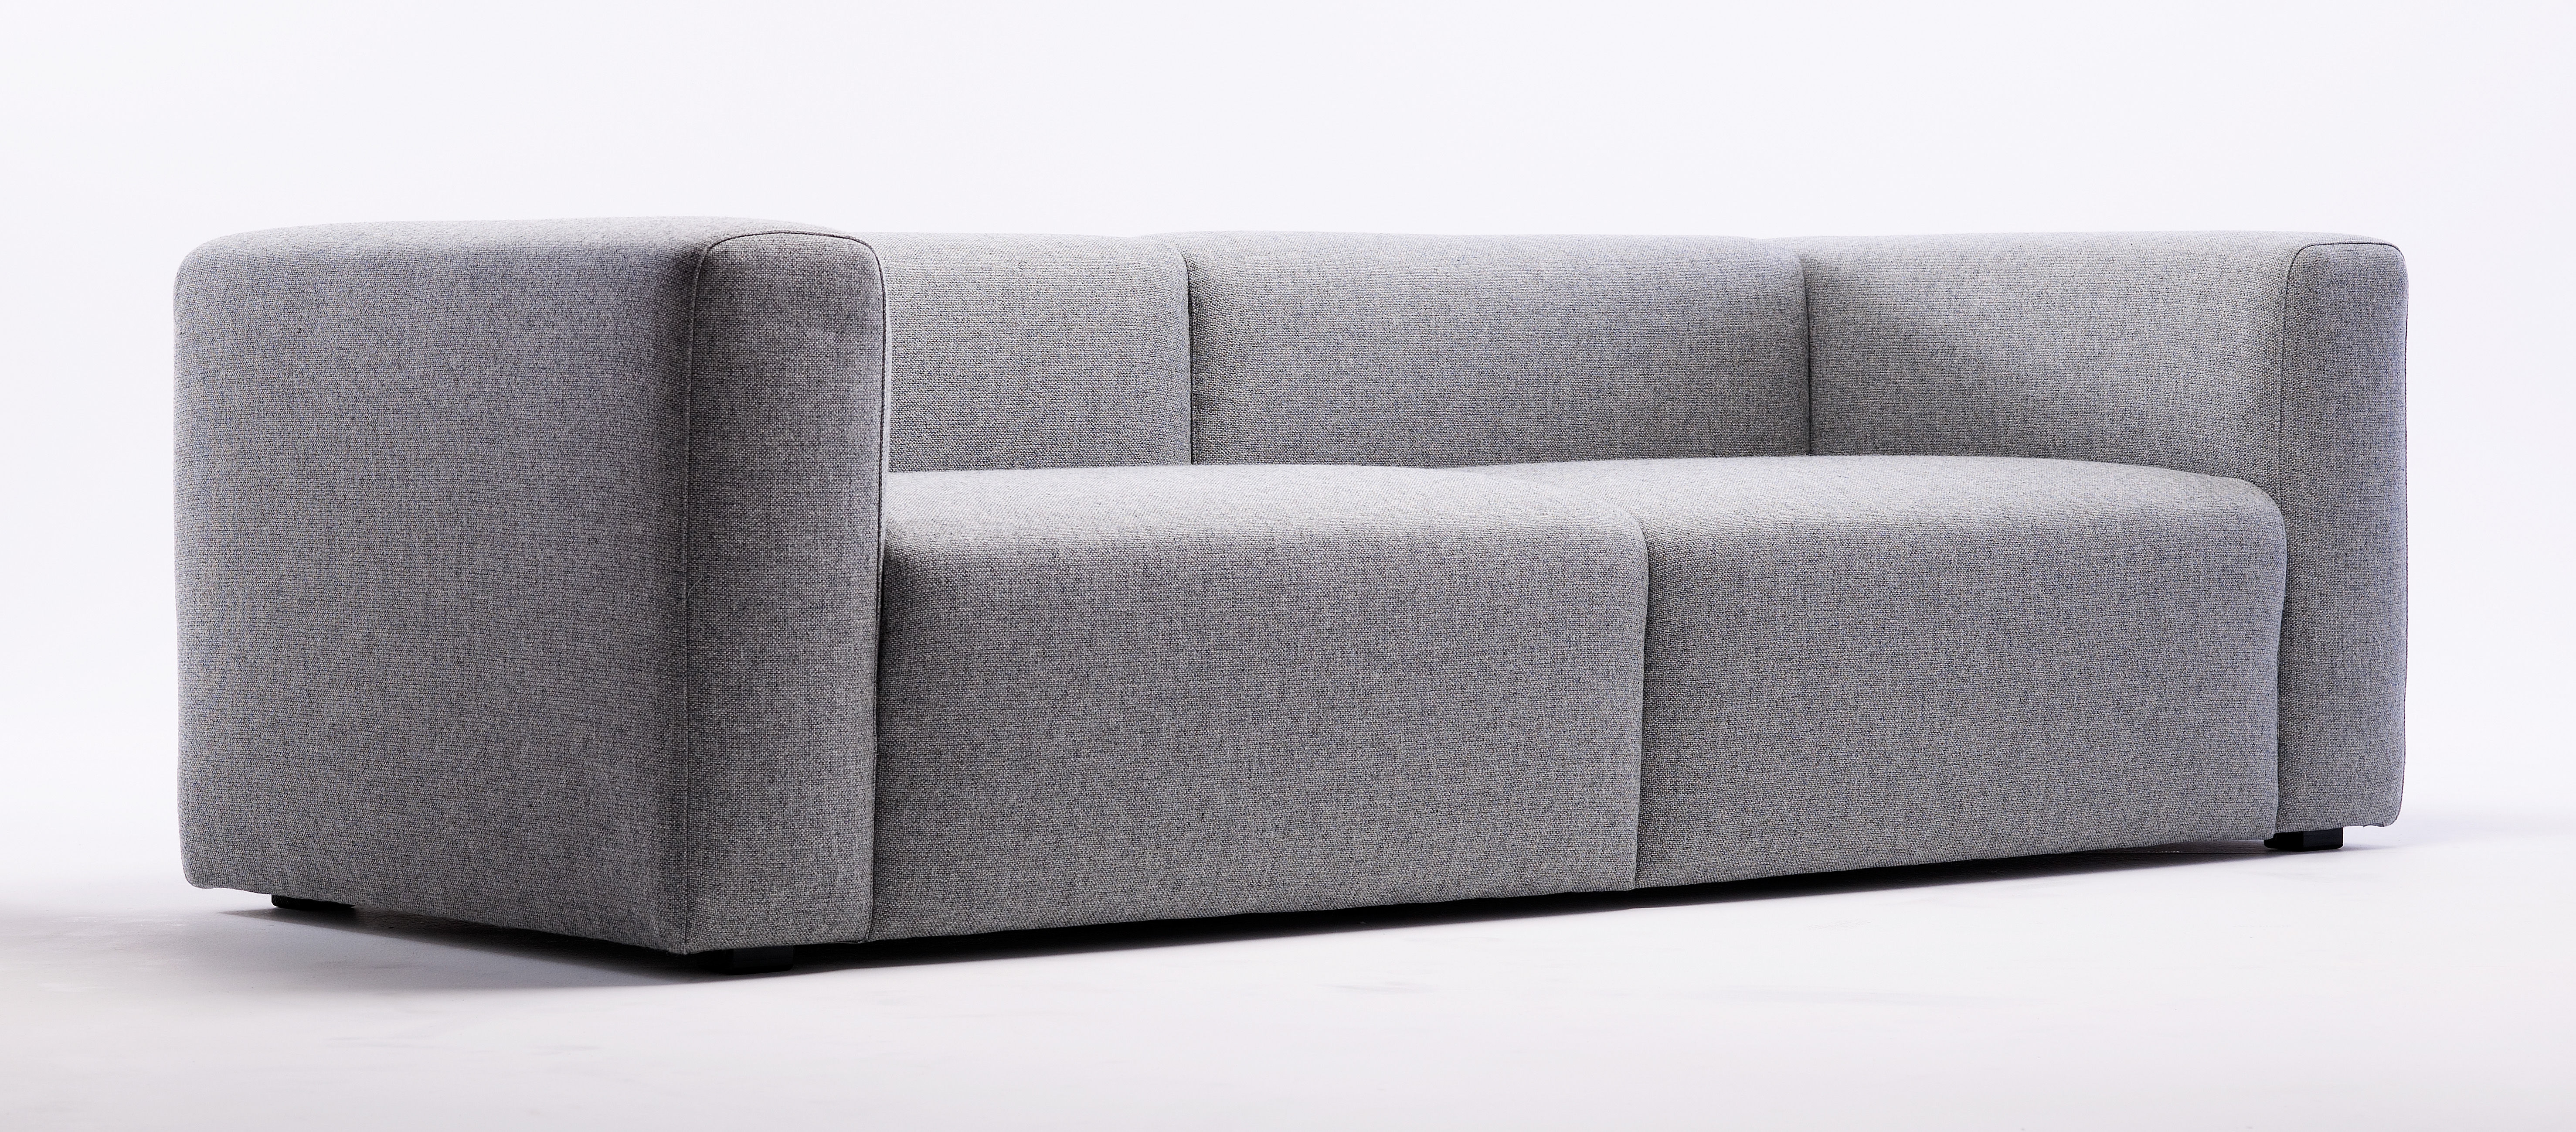 Furniture Sofas Mags Straight Sofa 2 ½ Seats L 228 Cm By